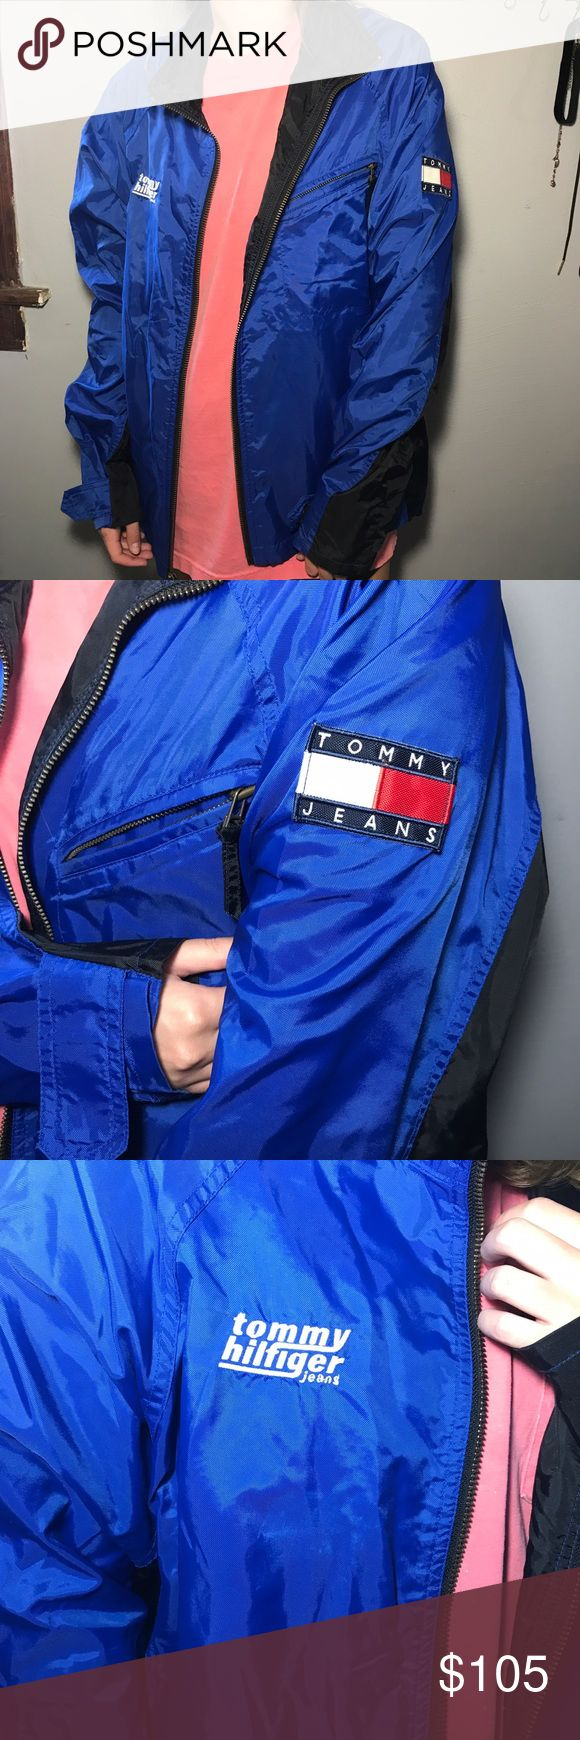 Vintage Tommy Hilfiger Windbreaker Perfect condition! Model is 5'2 and it hits at her waist.  Make me an offer! Tommy Hilfiger Jackets & Coats Windbreakers